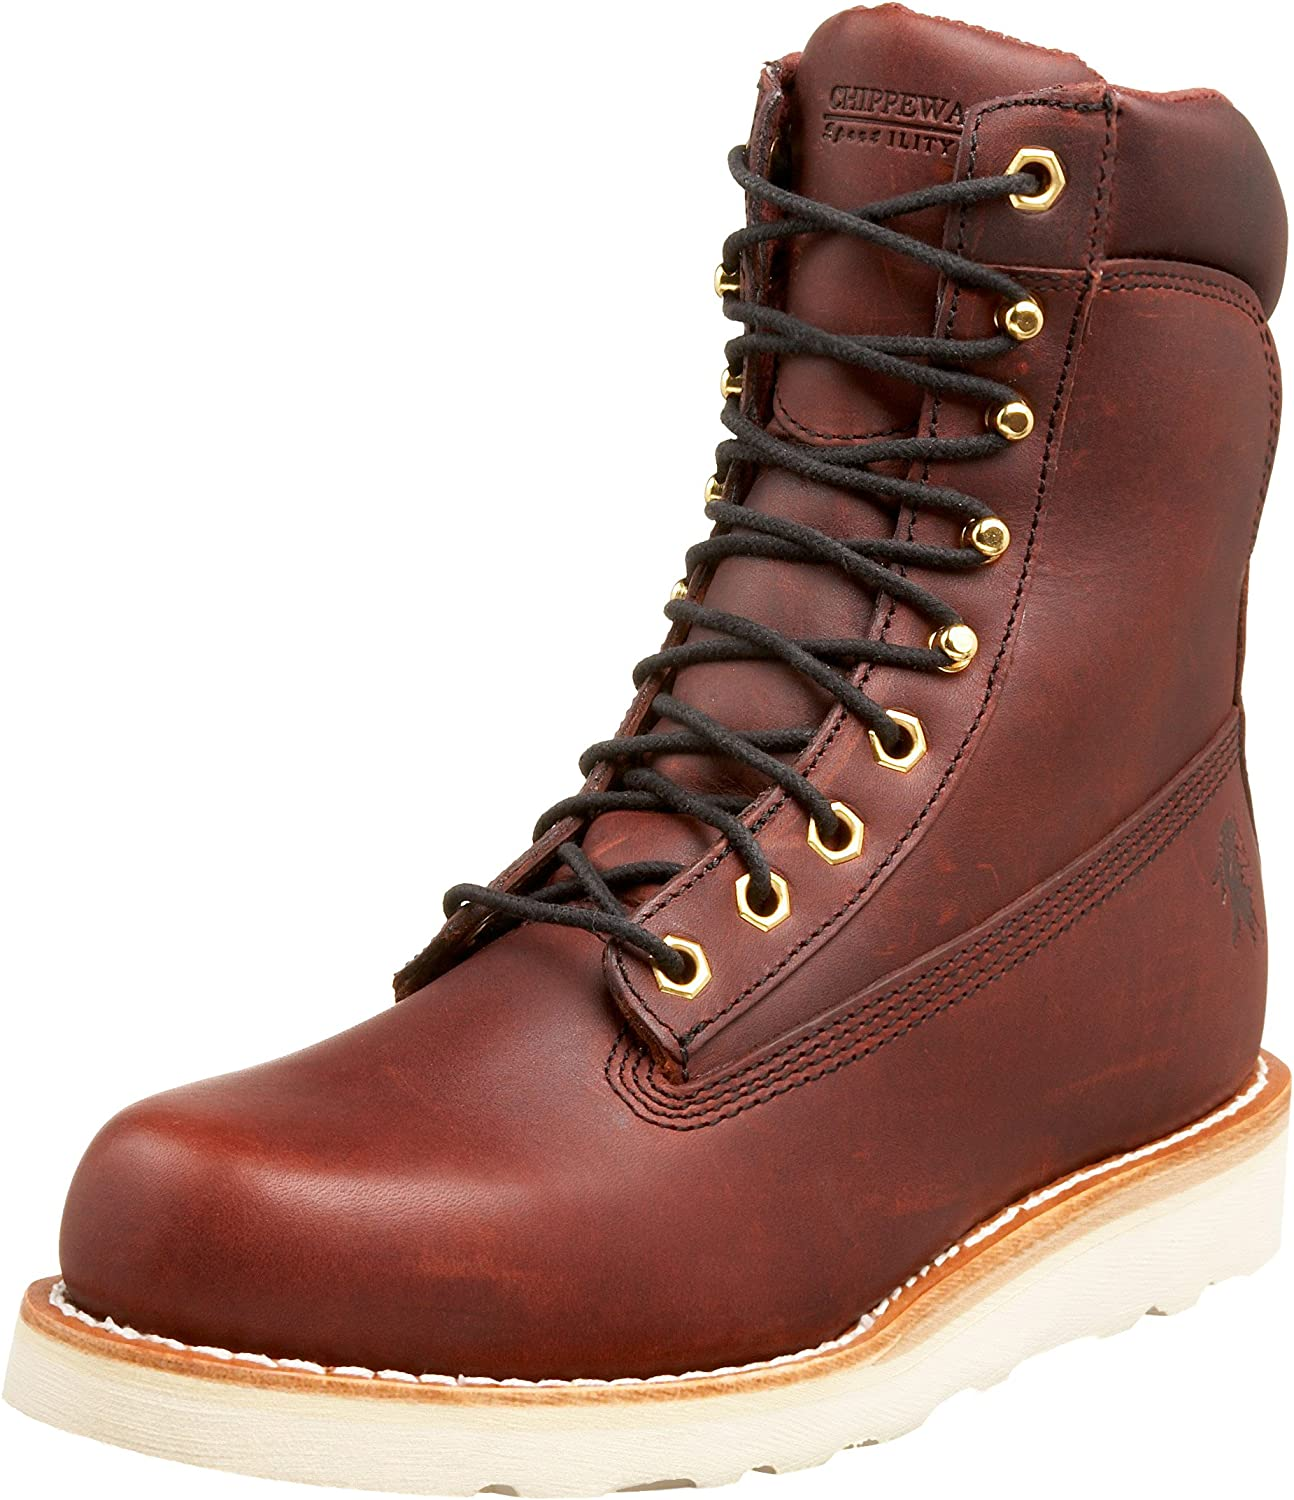 Chippewa Work Boots Shoes 2020 Online